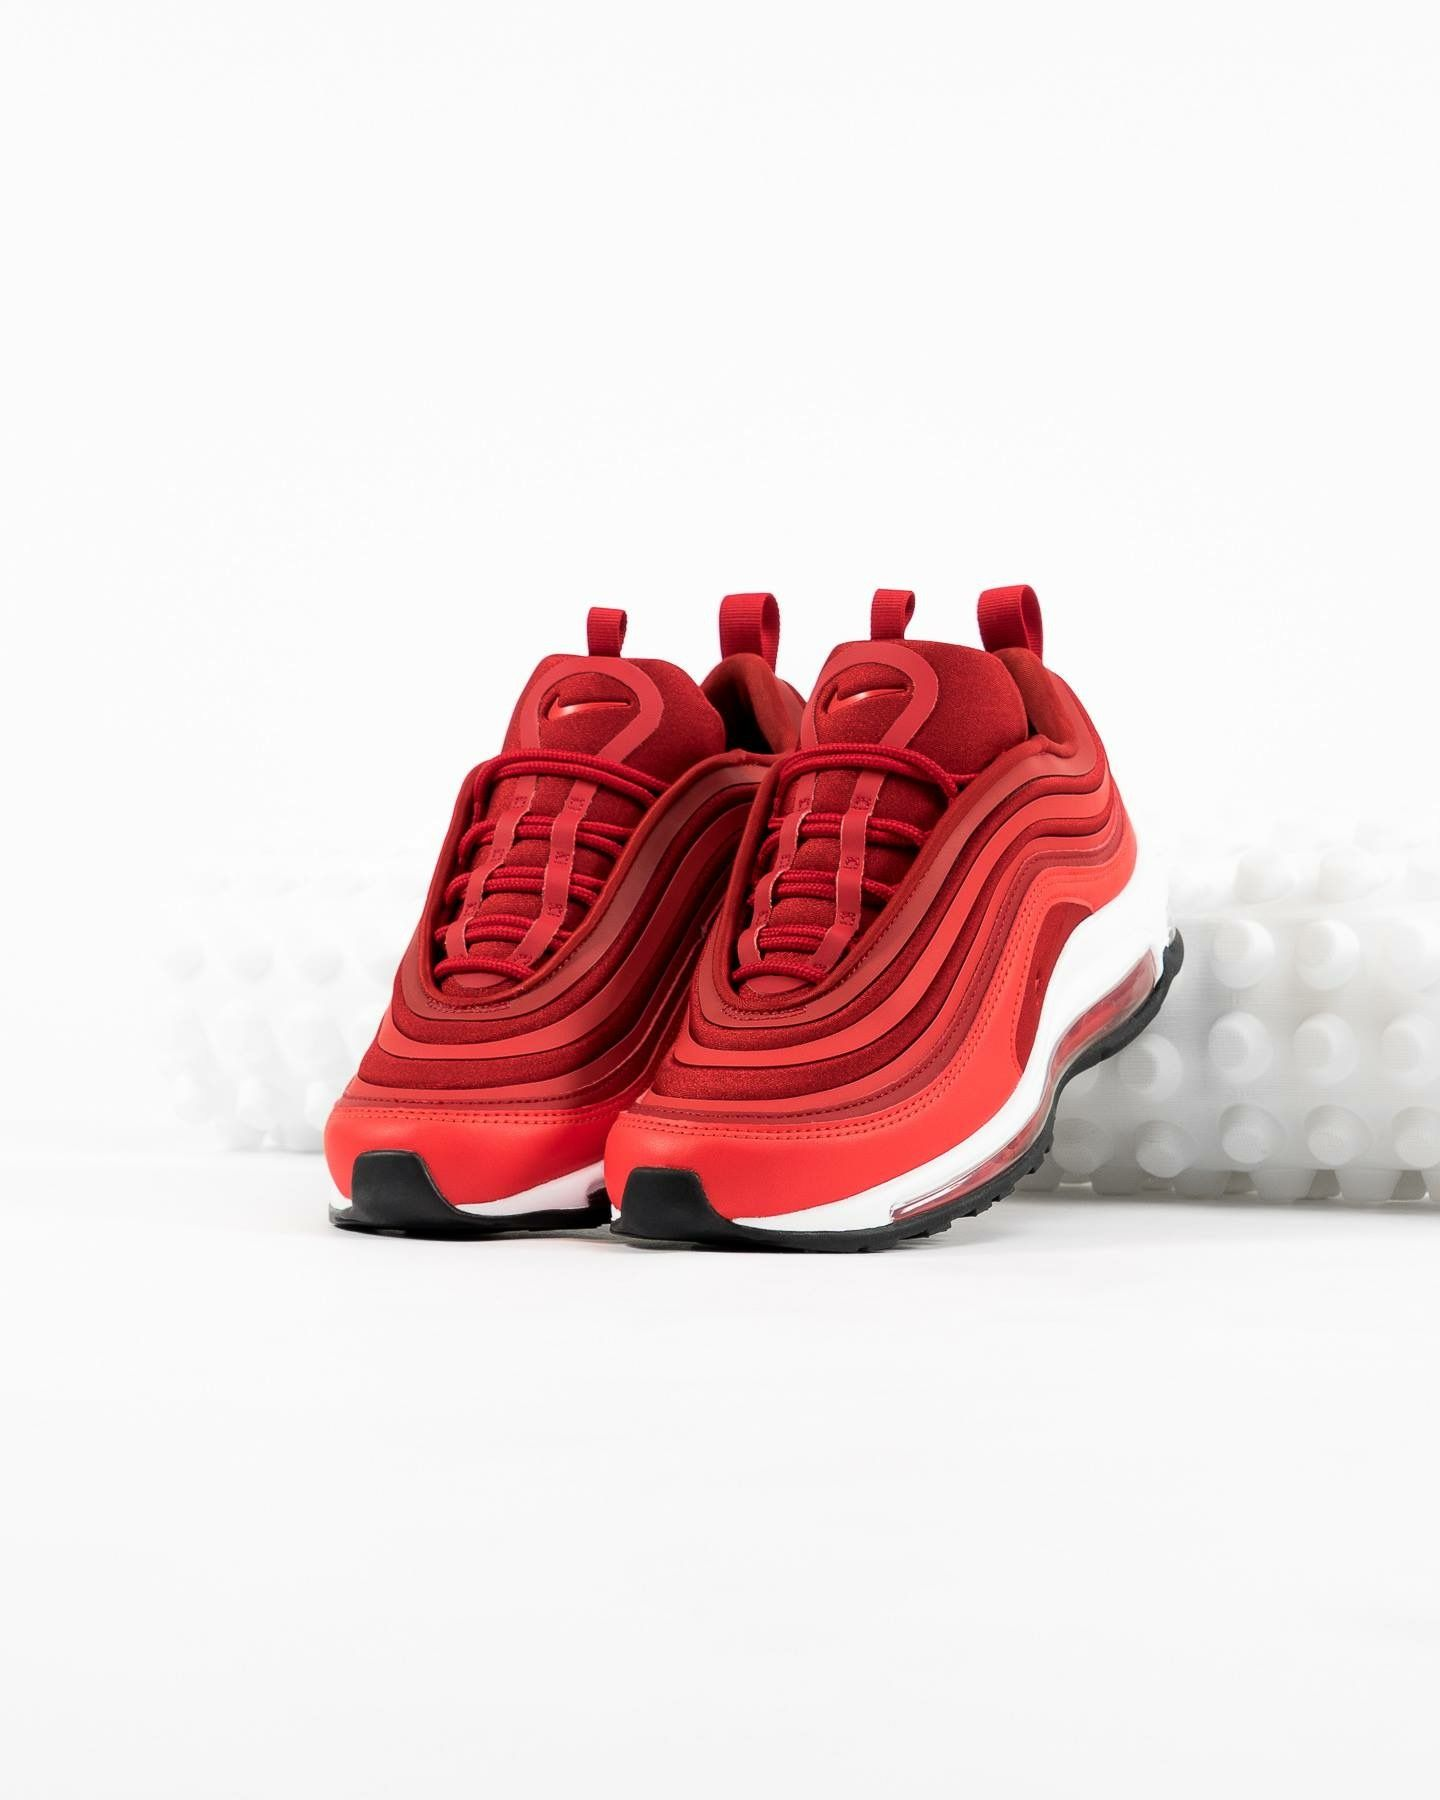 Nike Shoes | Air Max 97 Ultra Gym Red | Poshmark